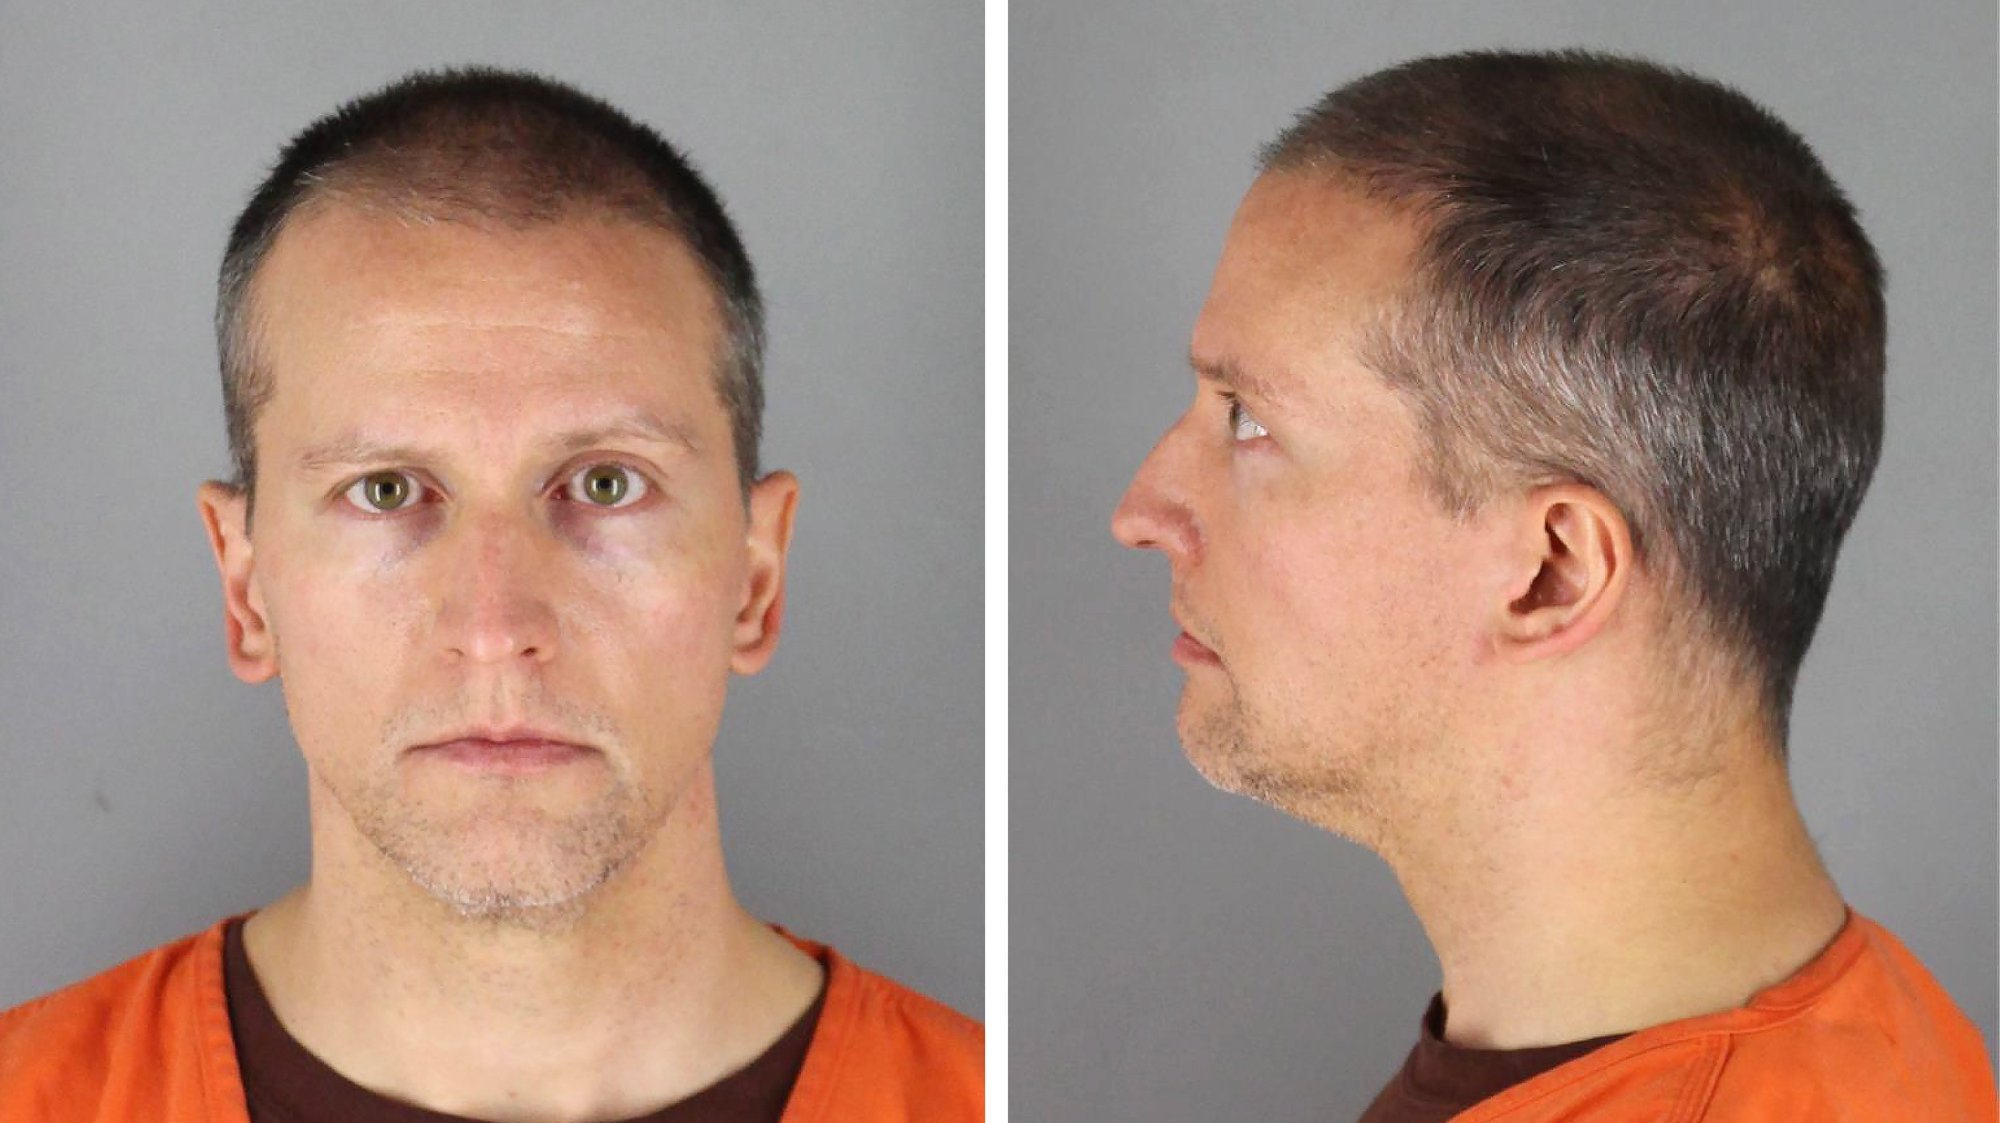 epa09148383 Handout booking photo released by the Hennepin County Sheriff's Office showing former Minneapolis Police Department Police Officer Derek Chauvin who was arrested and charged with second-degree murder, third-degree murder and second-degree manslaughter in the death of George Floyd in Minneapolis, Minnesota, USA, 12 June 2020 (reissued 20 April 2021). Former Minneapolis police officer Derek Chauvin was found guilty on all counts in the death of George Floyd on 20 April 2021.  EPA/HENNEPIN COUNTY SHERIFF / HANDOUT  HANDOUT EDITORIAL USE ONLY/NO SALES *** Local Caption *** 56147358